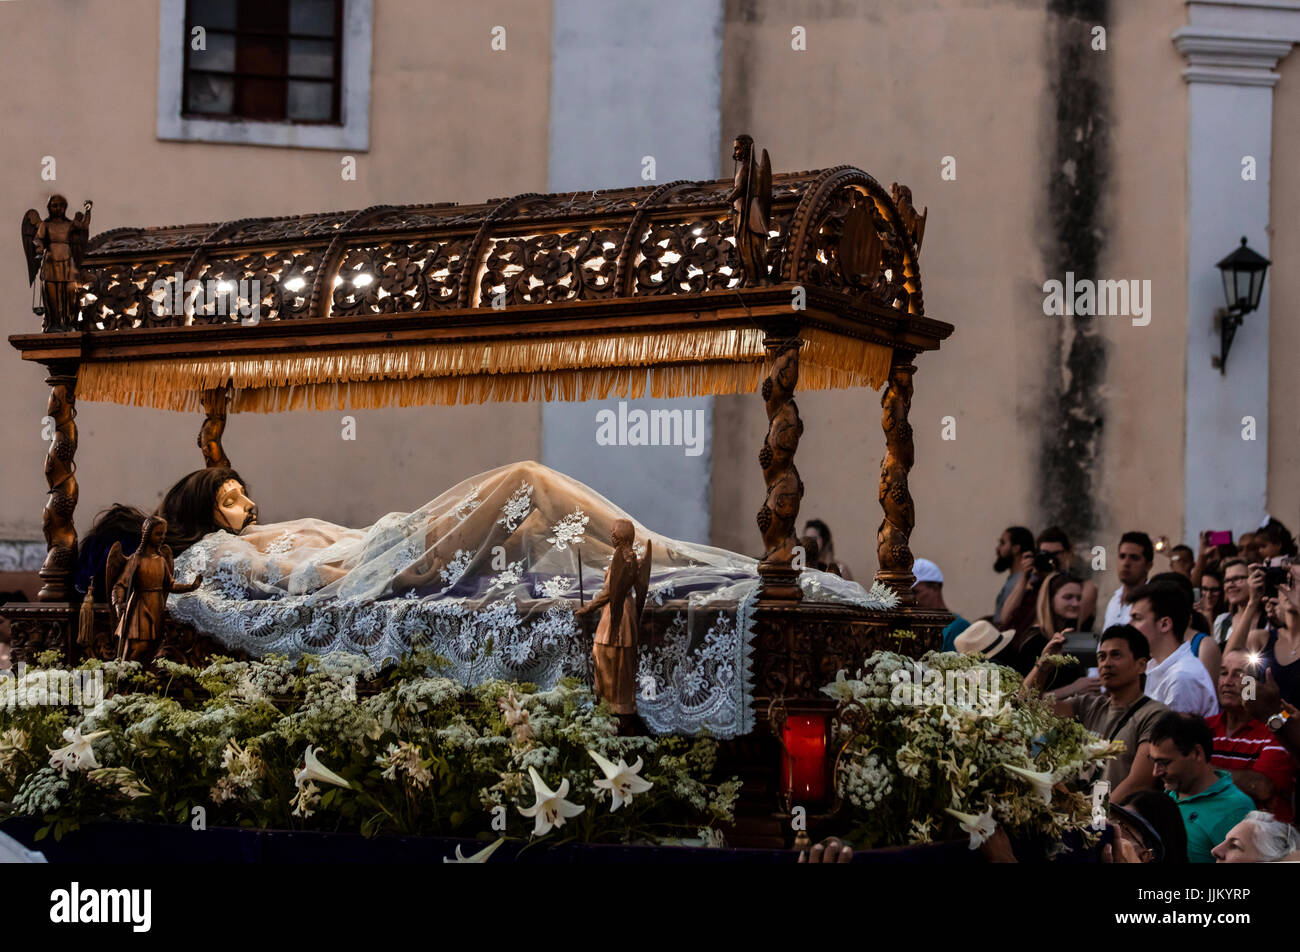 During EASTER known as SEMANA SANTA religious statues are paraded through town at dusk - TRINIDAD, CUBA Stock Photo